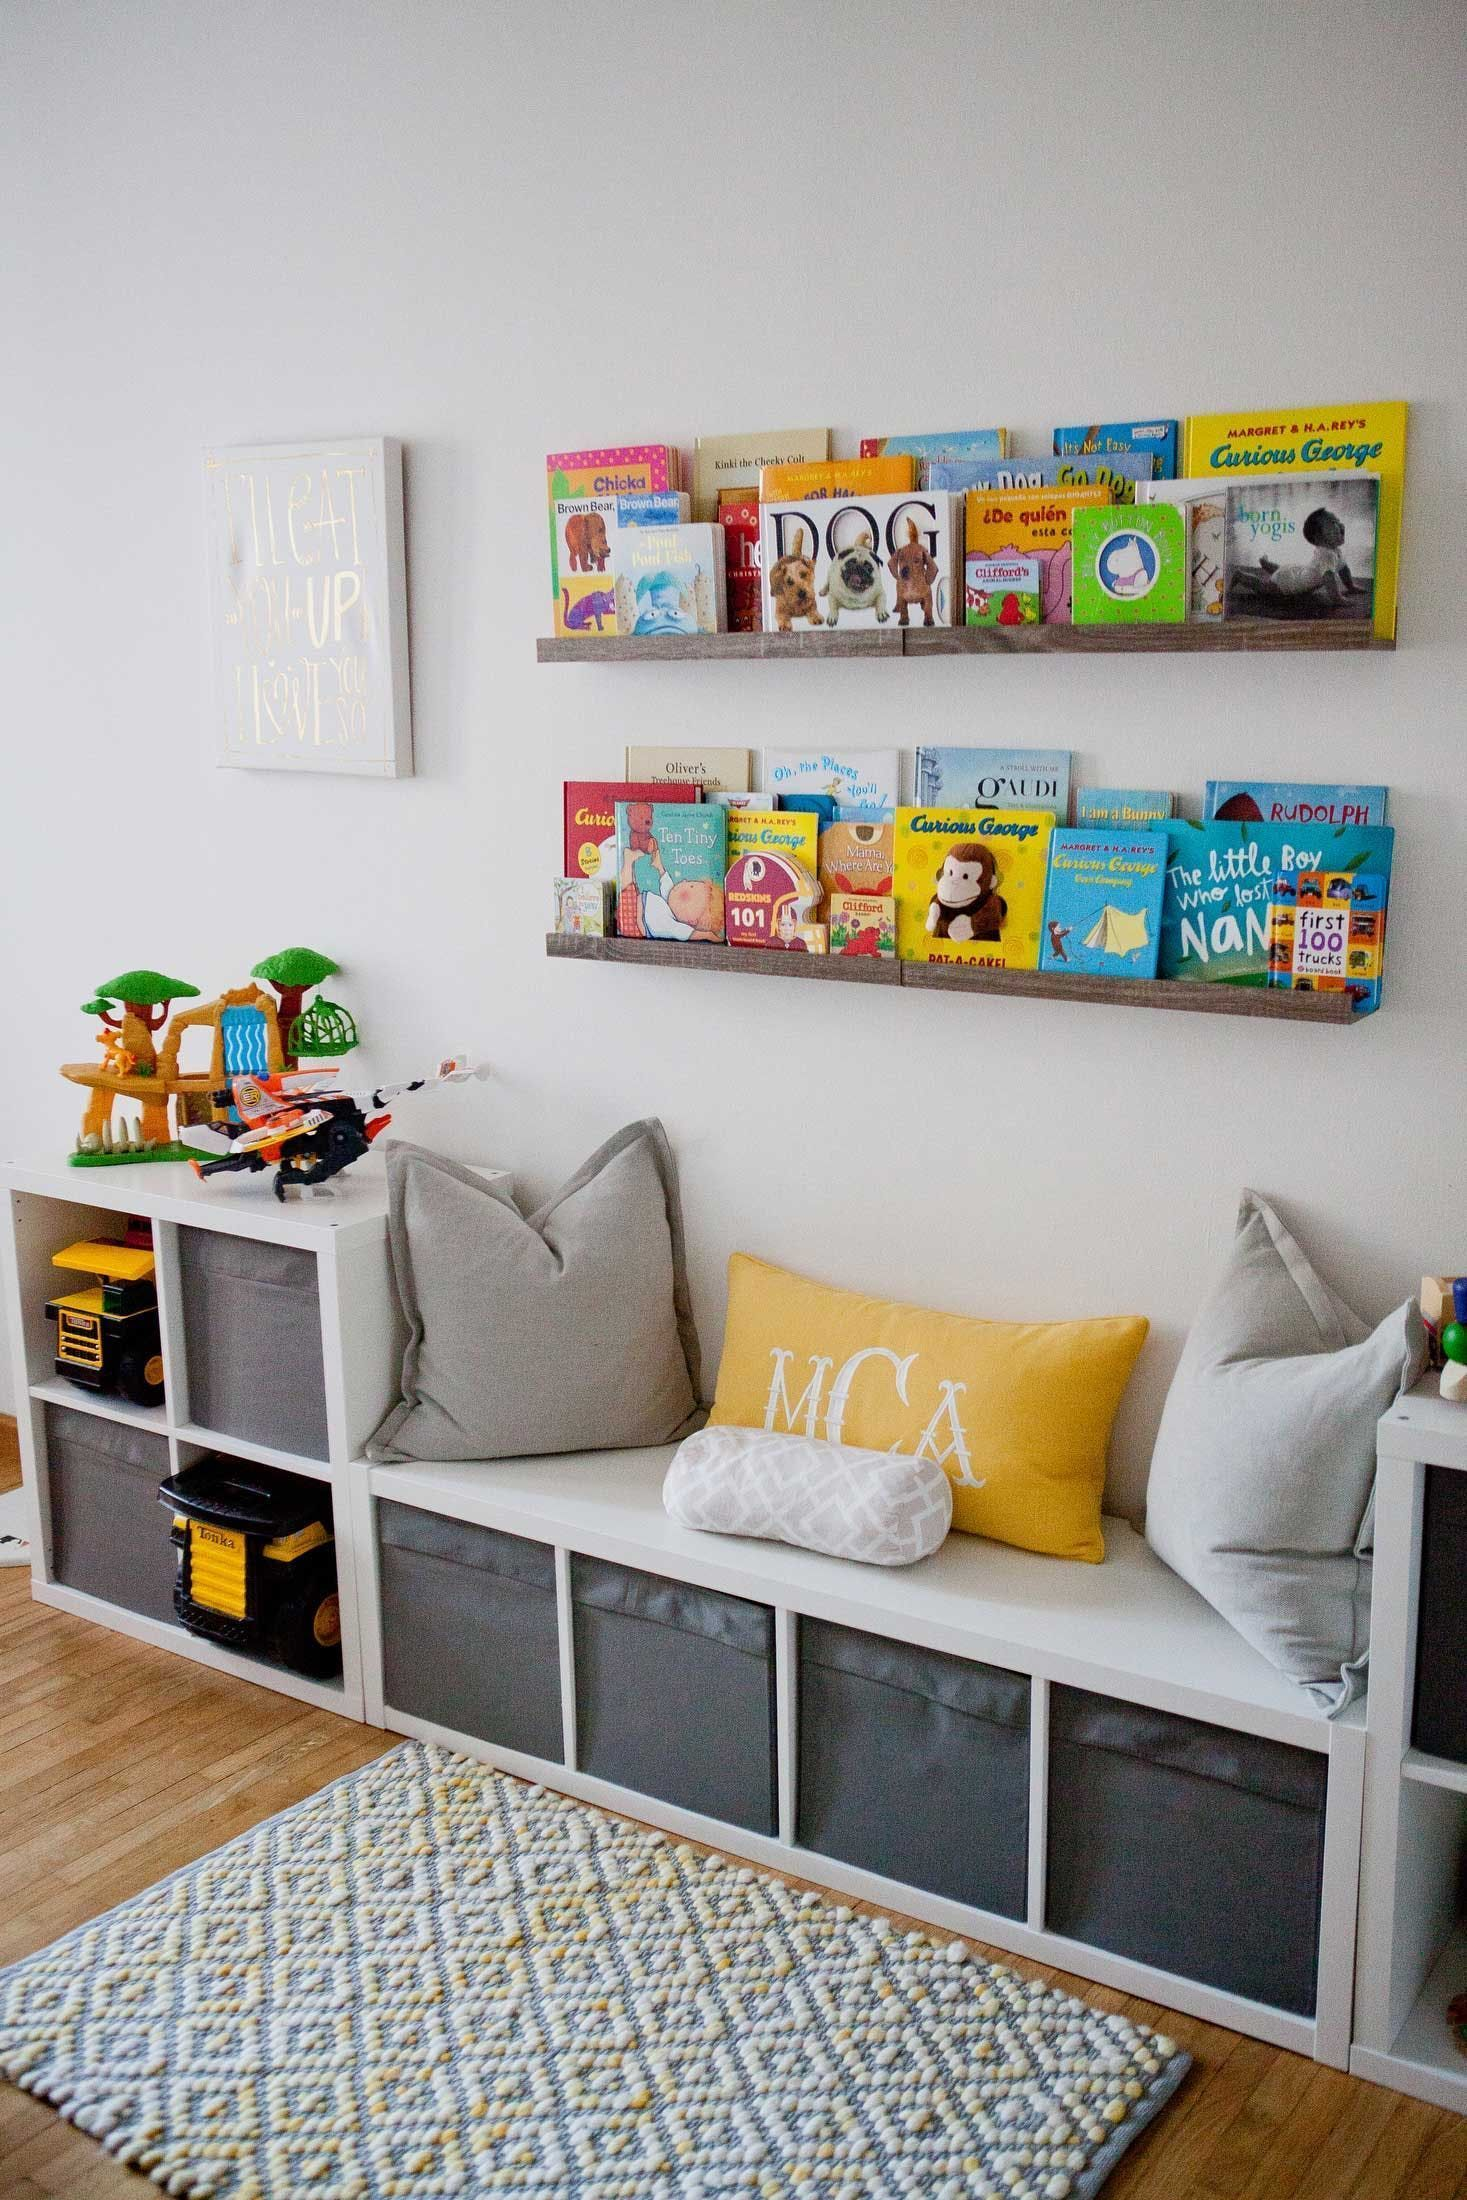 Ikea Storage Is King In This Play Room The Book Rail Displays